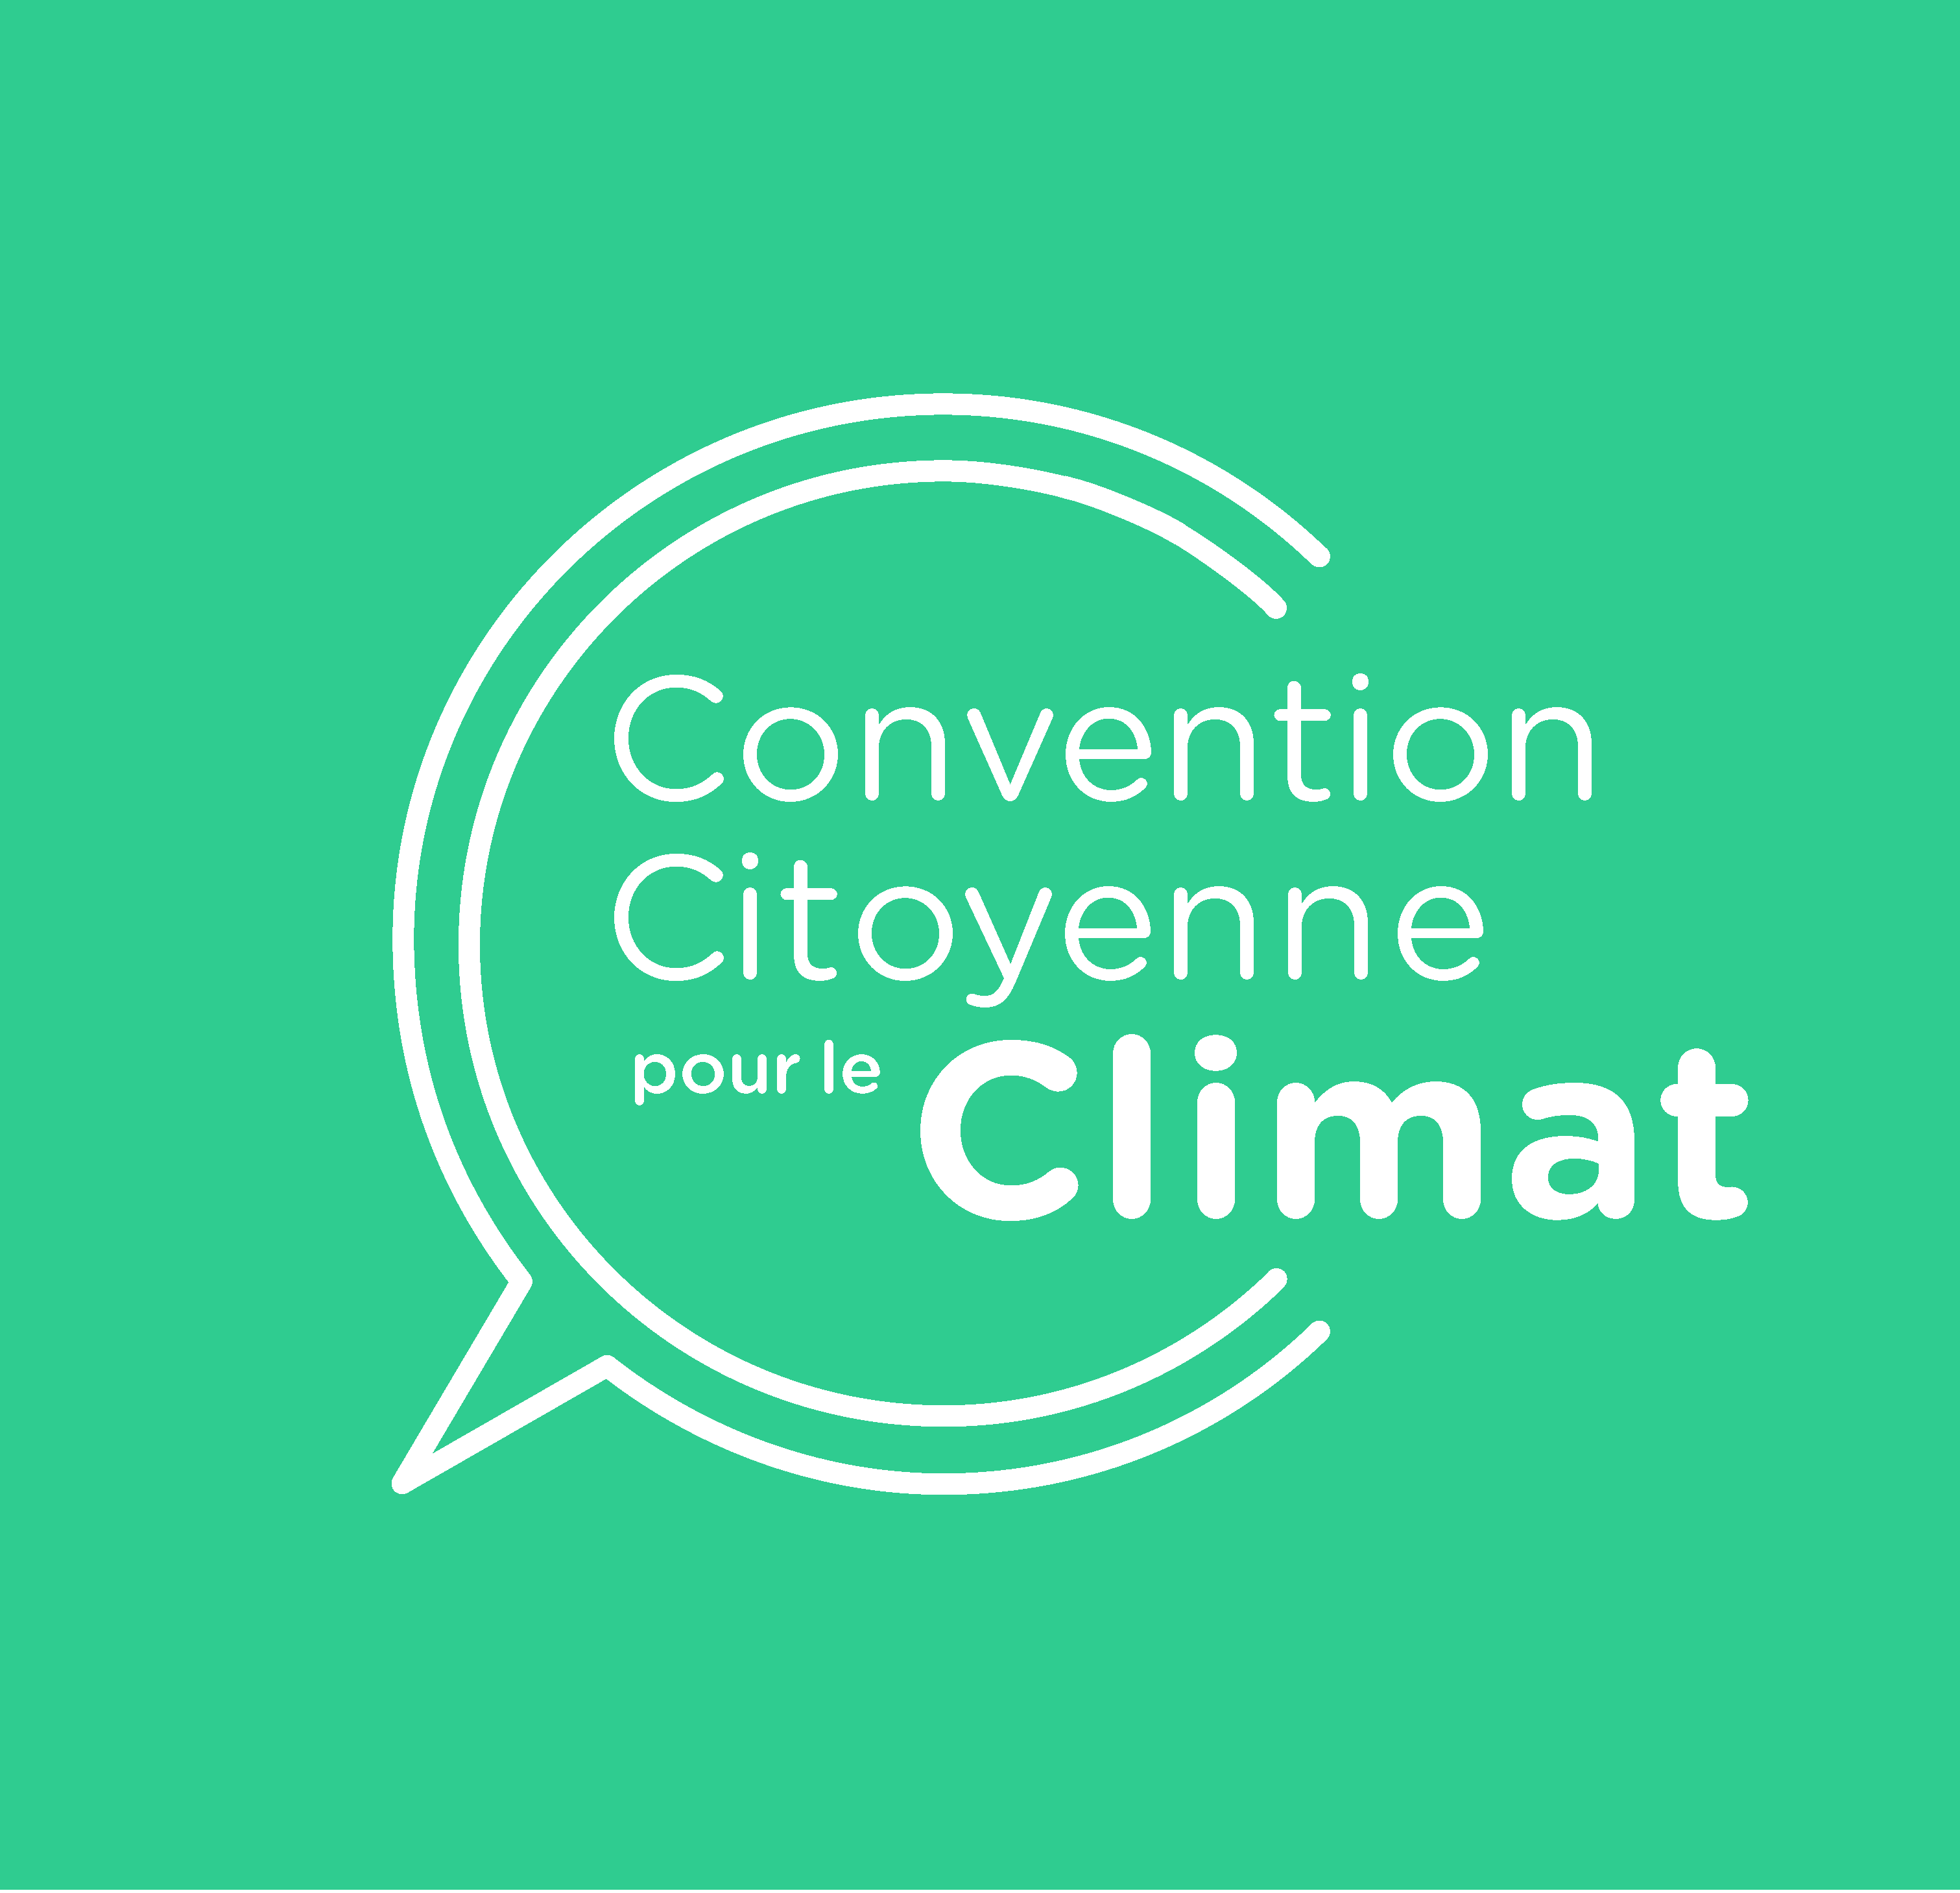 Convention-citoyenne-climat-FINAL-04